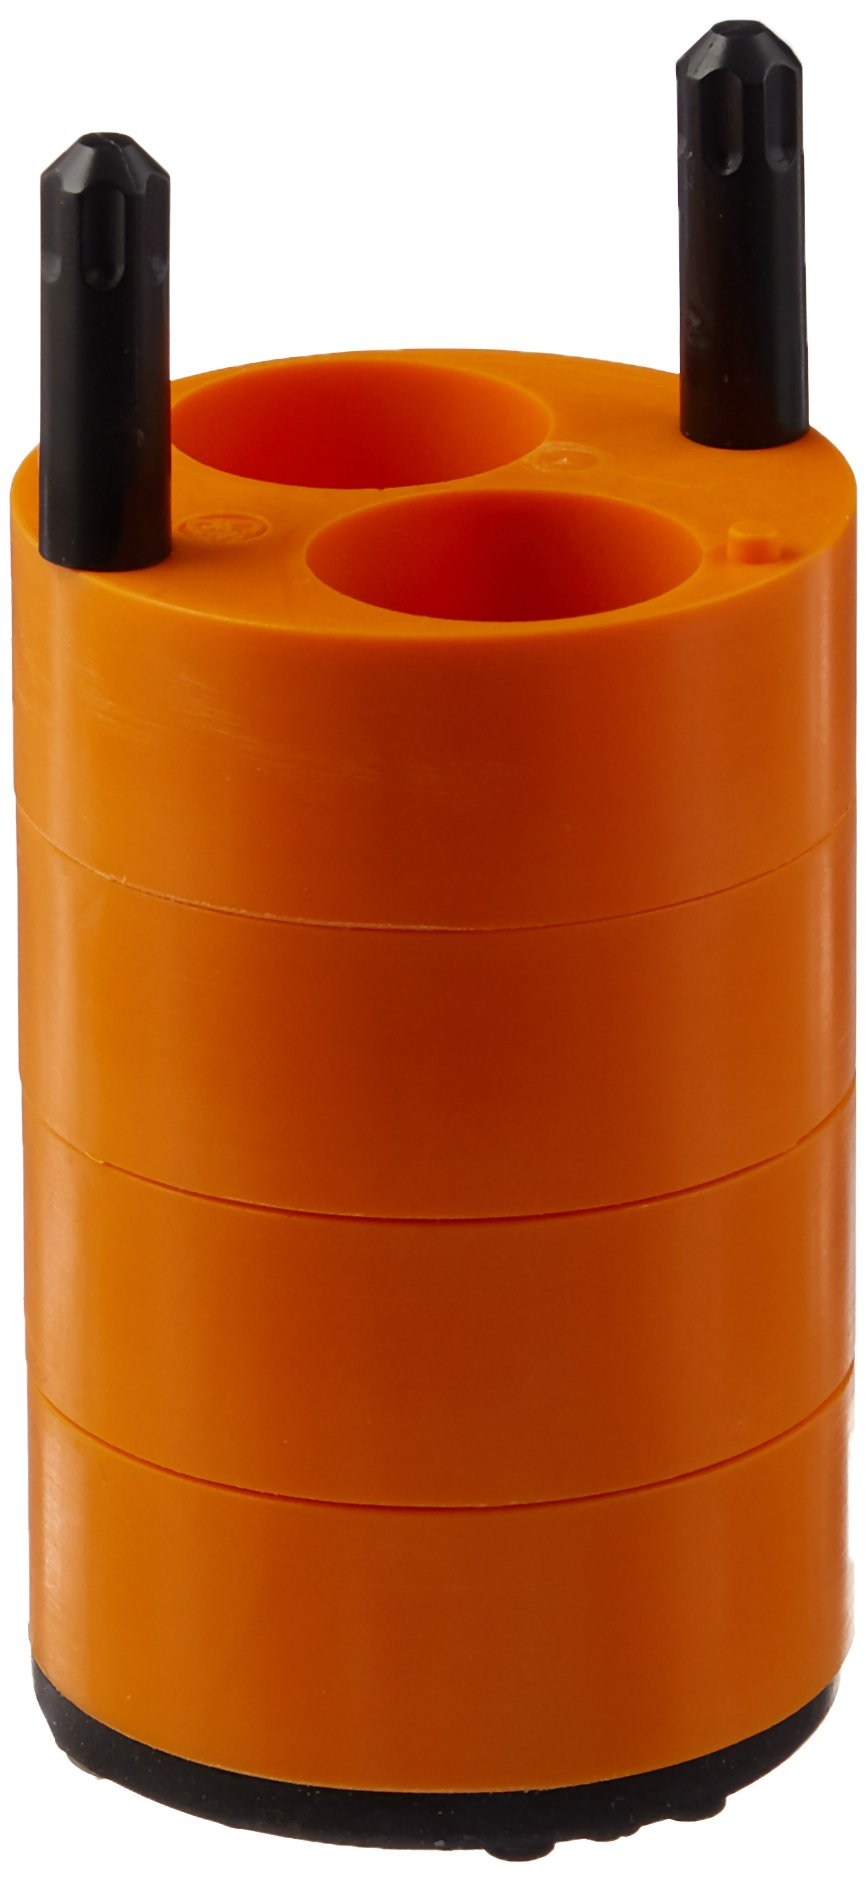 THERMO FISHER SCIENTIFIC 75008184 Centrifuge Adapter for Round Bucket, 2 mL x 25 mL Capacity DIN Standard Tube, Orange